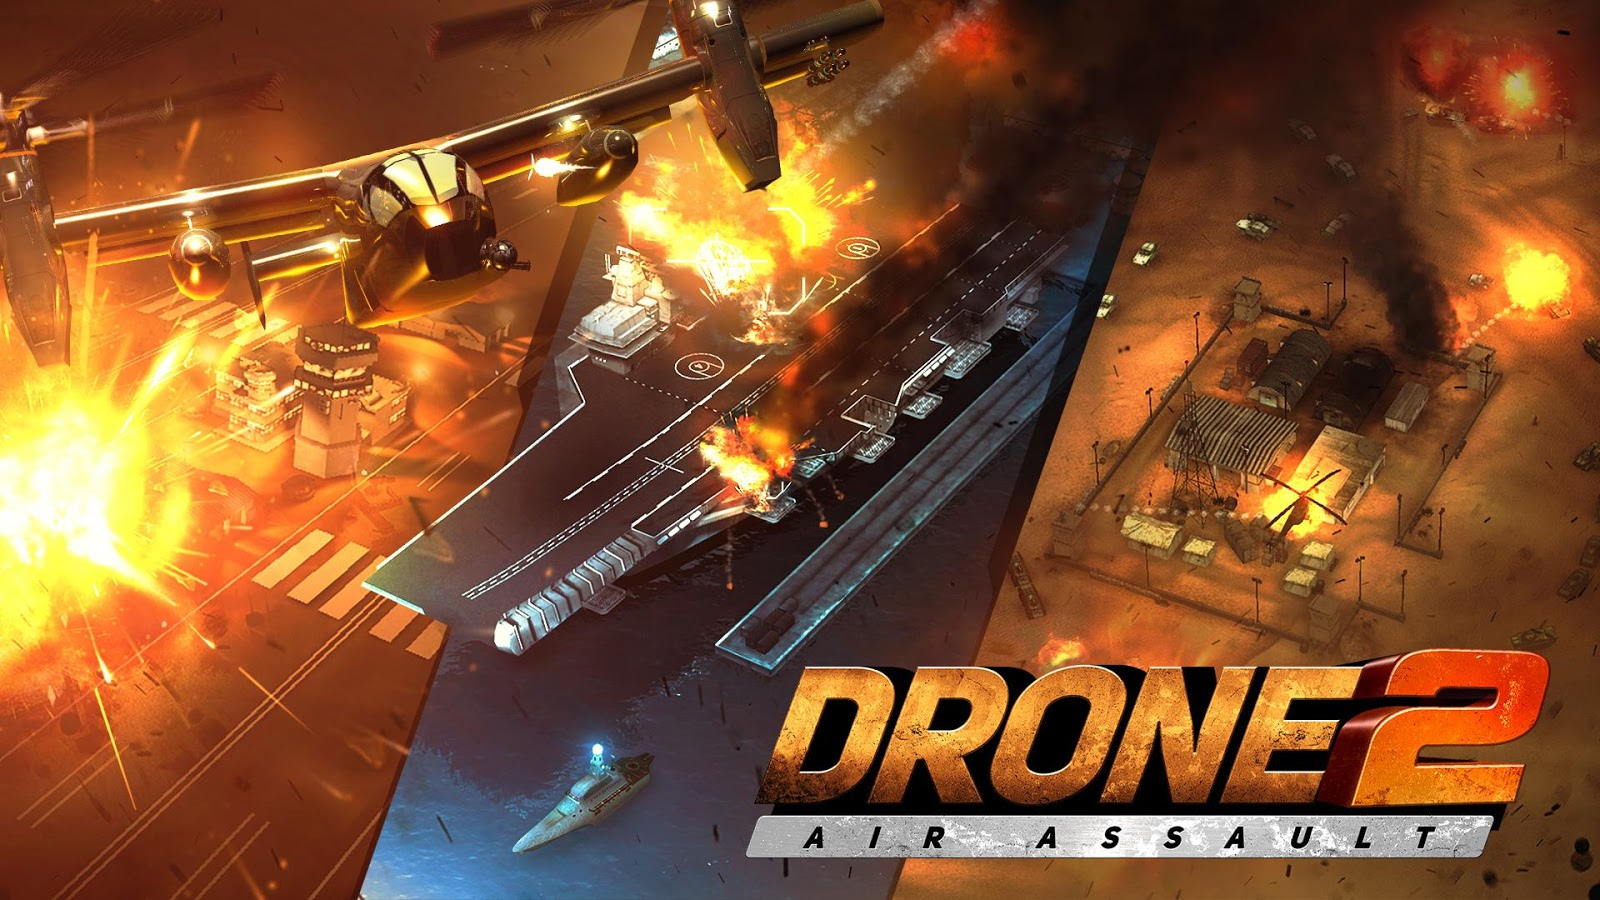 Drone 2 Air Assault (Unreleased) Screenshot 0